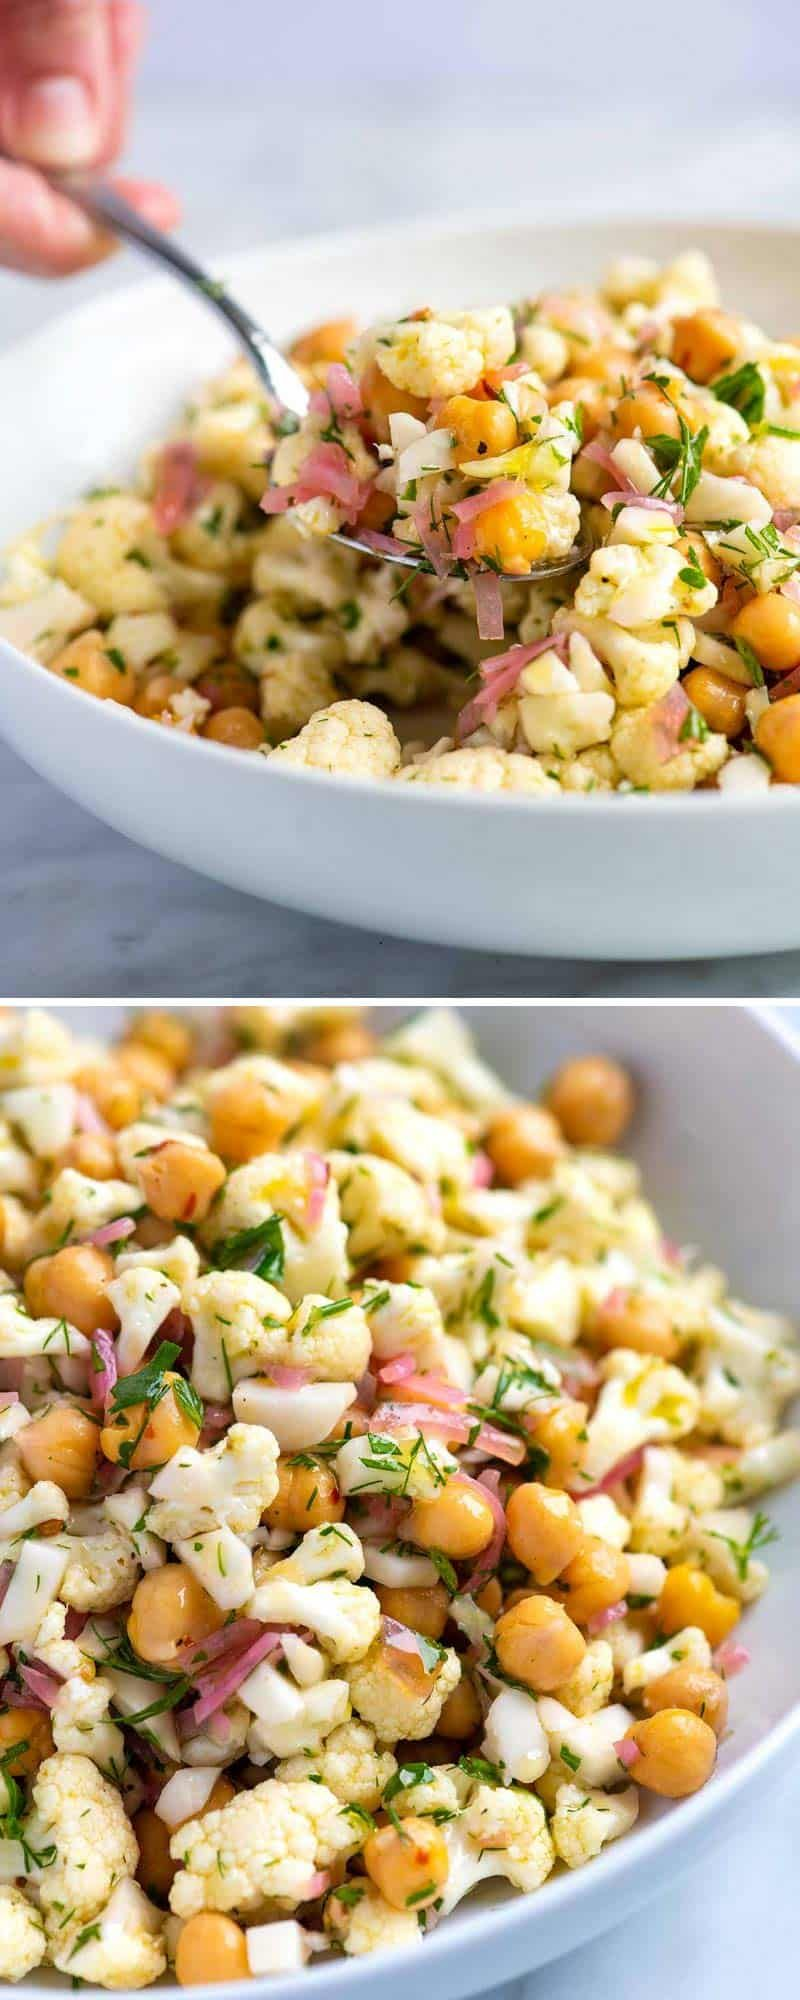 Herby Cauliflower Salad with Chickpeas images